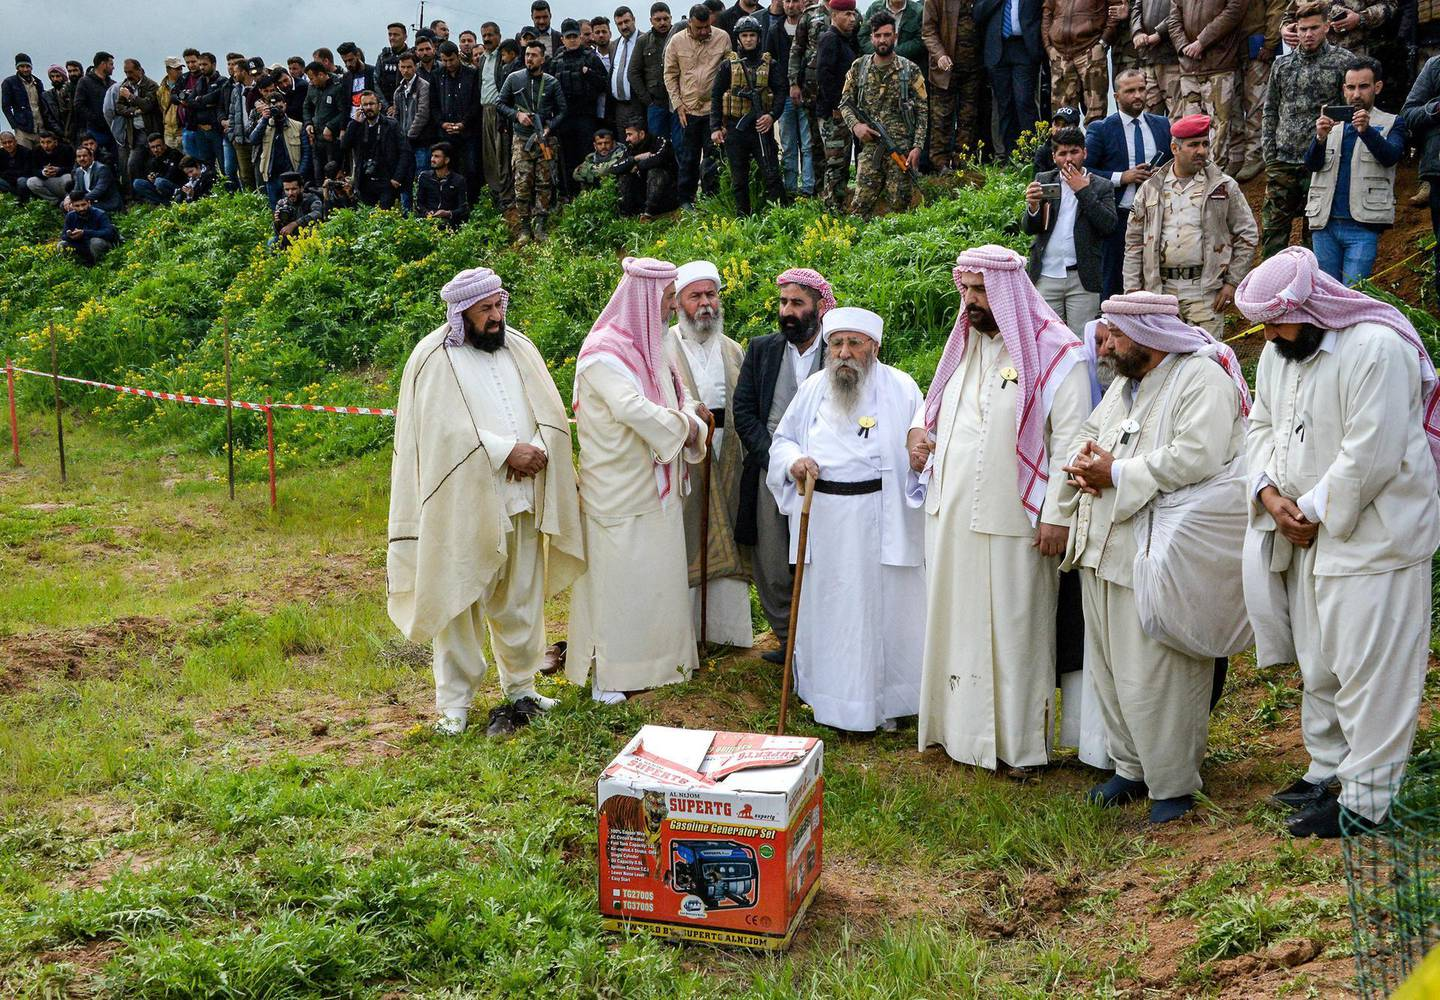 Iraqi Yazidi clerics attend the exhumation of a mass-grave of hundreds of Yazidis killed by Islamic State (IS) group militants in the northern Iraqi village of Kojo in Sinjar district on March 15, 2019. - Iraqi authorities exhumed the mass grave in an operation aiming to extract remains and identify victims of an August 2014 massacre of Yazidis by IS fighters as they entered the village of Kojo, during investigations of genocide against the decimated minority. (Photo by Zaid AL-OBEIDI / AFP)